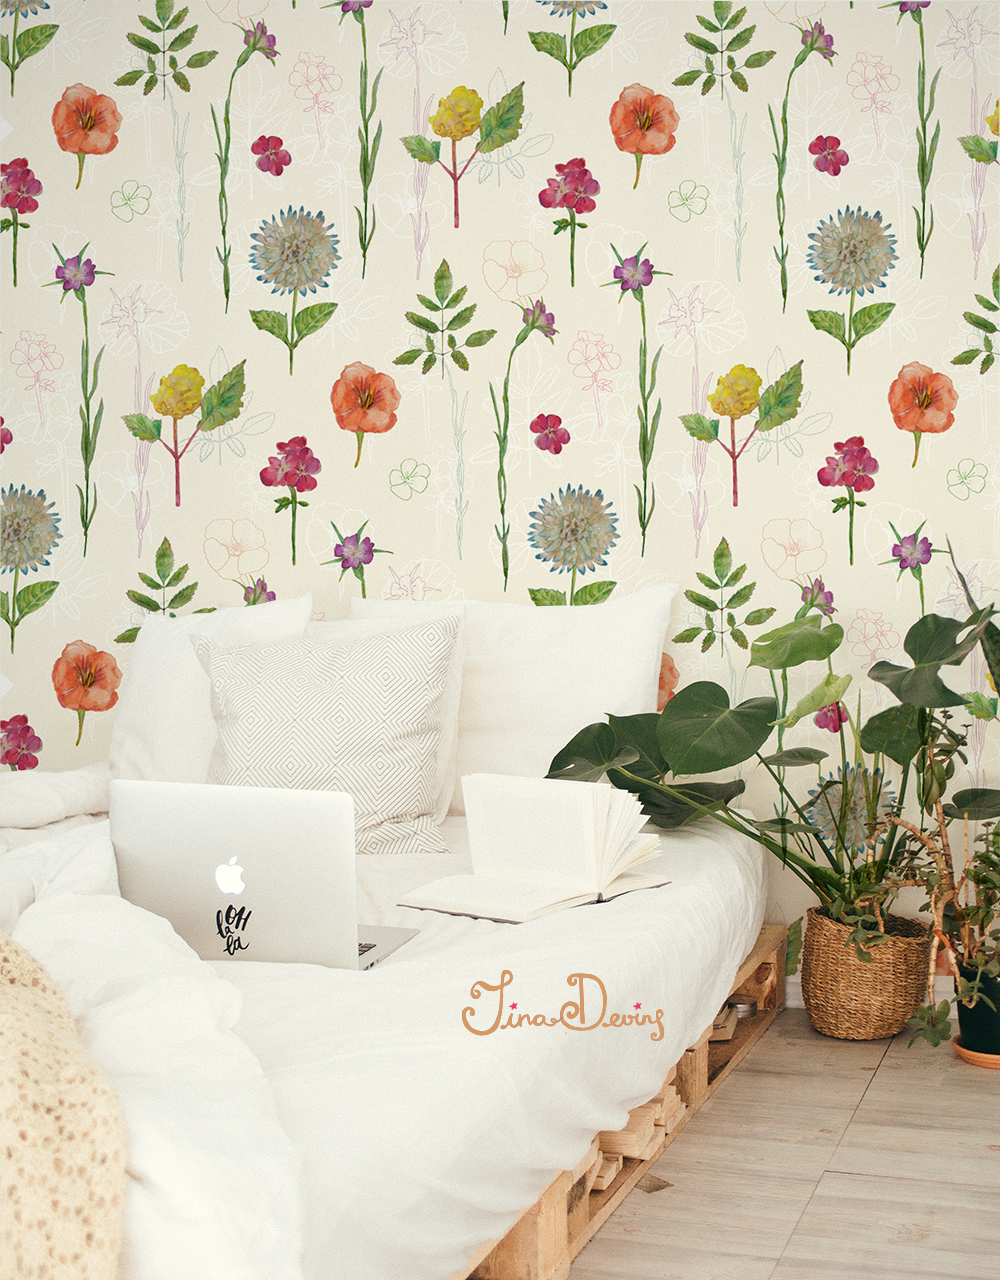 Botanical-Wallpaper-Tina-Devins-Urban-Outfitter-Pattern-Design-Illustration-Floral